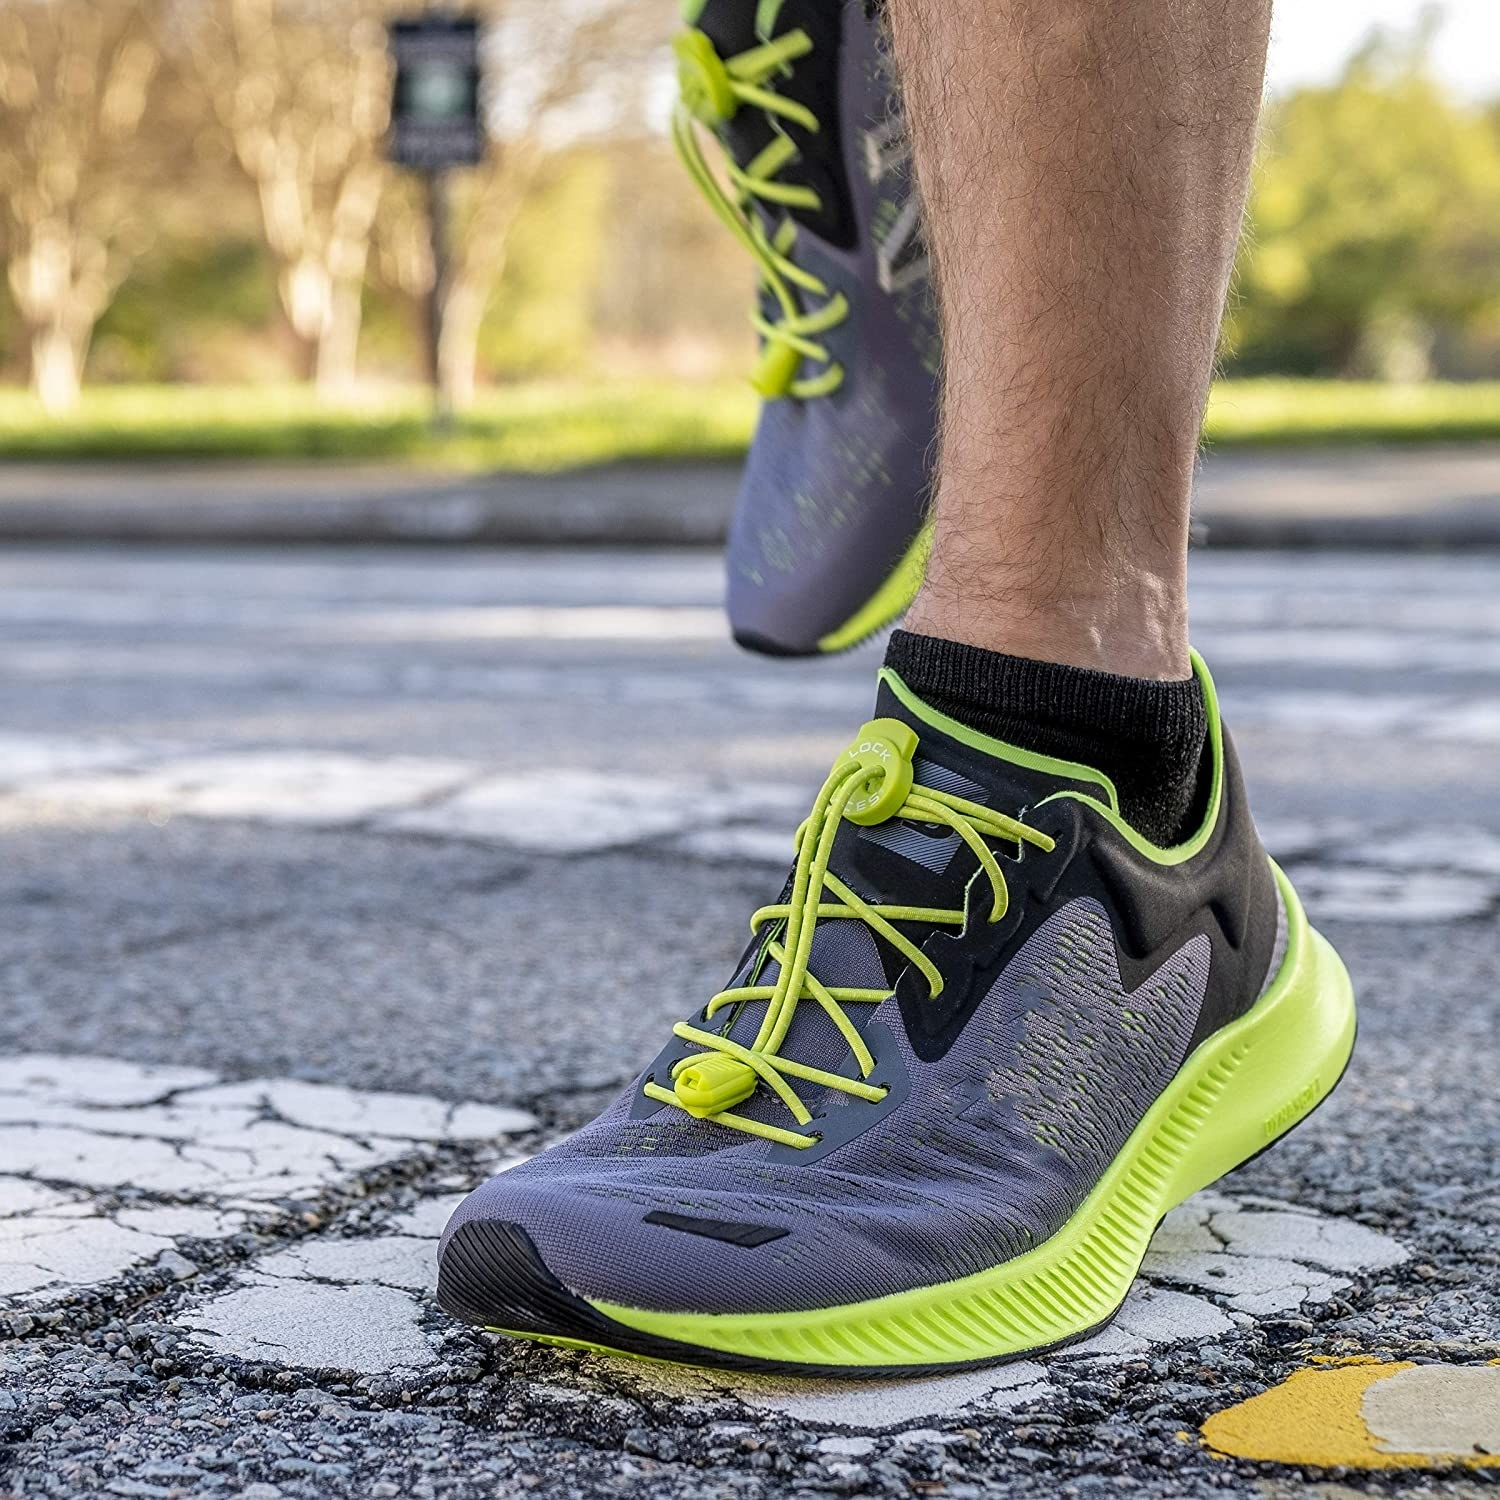 A person wearing the laces in their running shoes